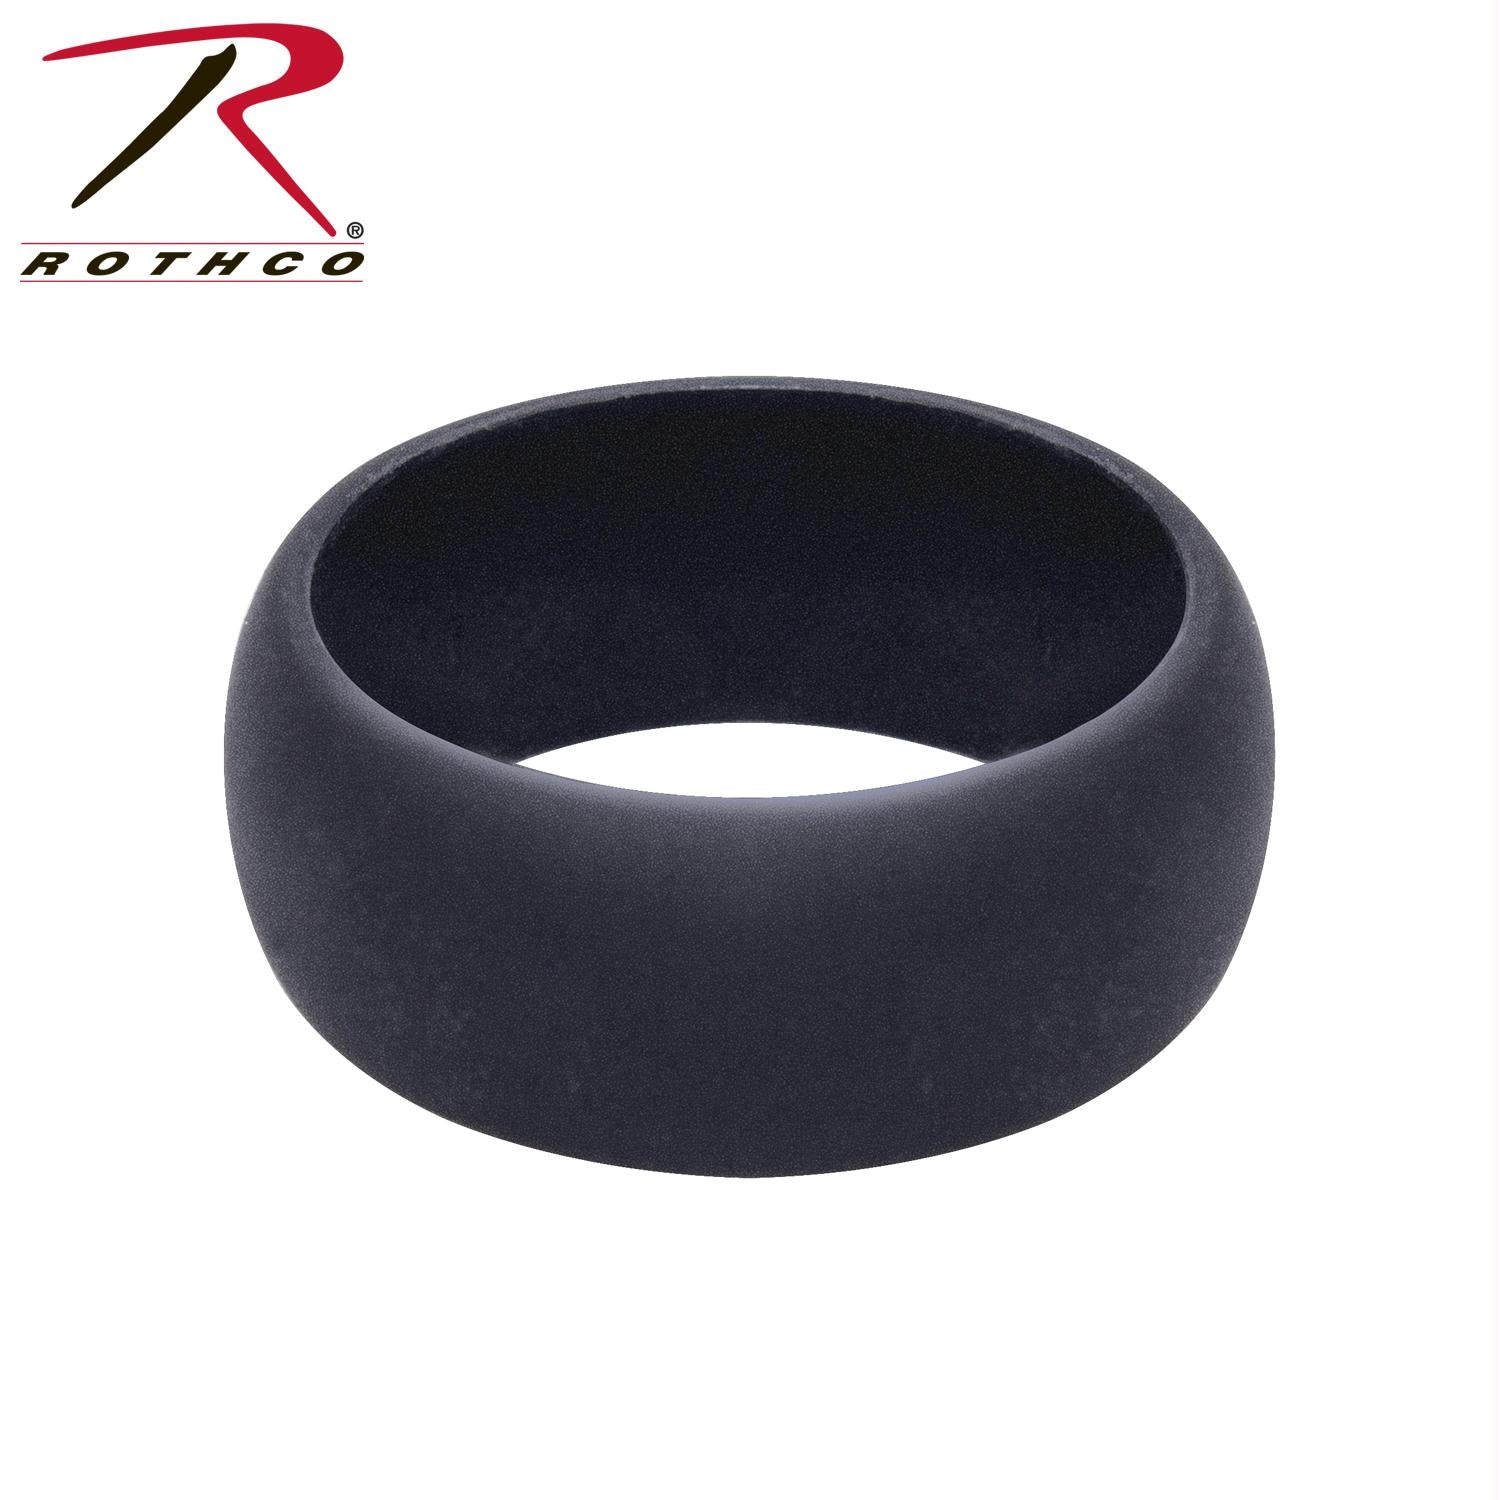 Rothco Silicone Ring - Ring Size 9 (2 5/16 inches)